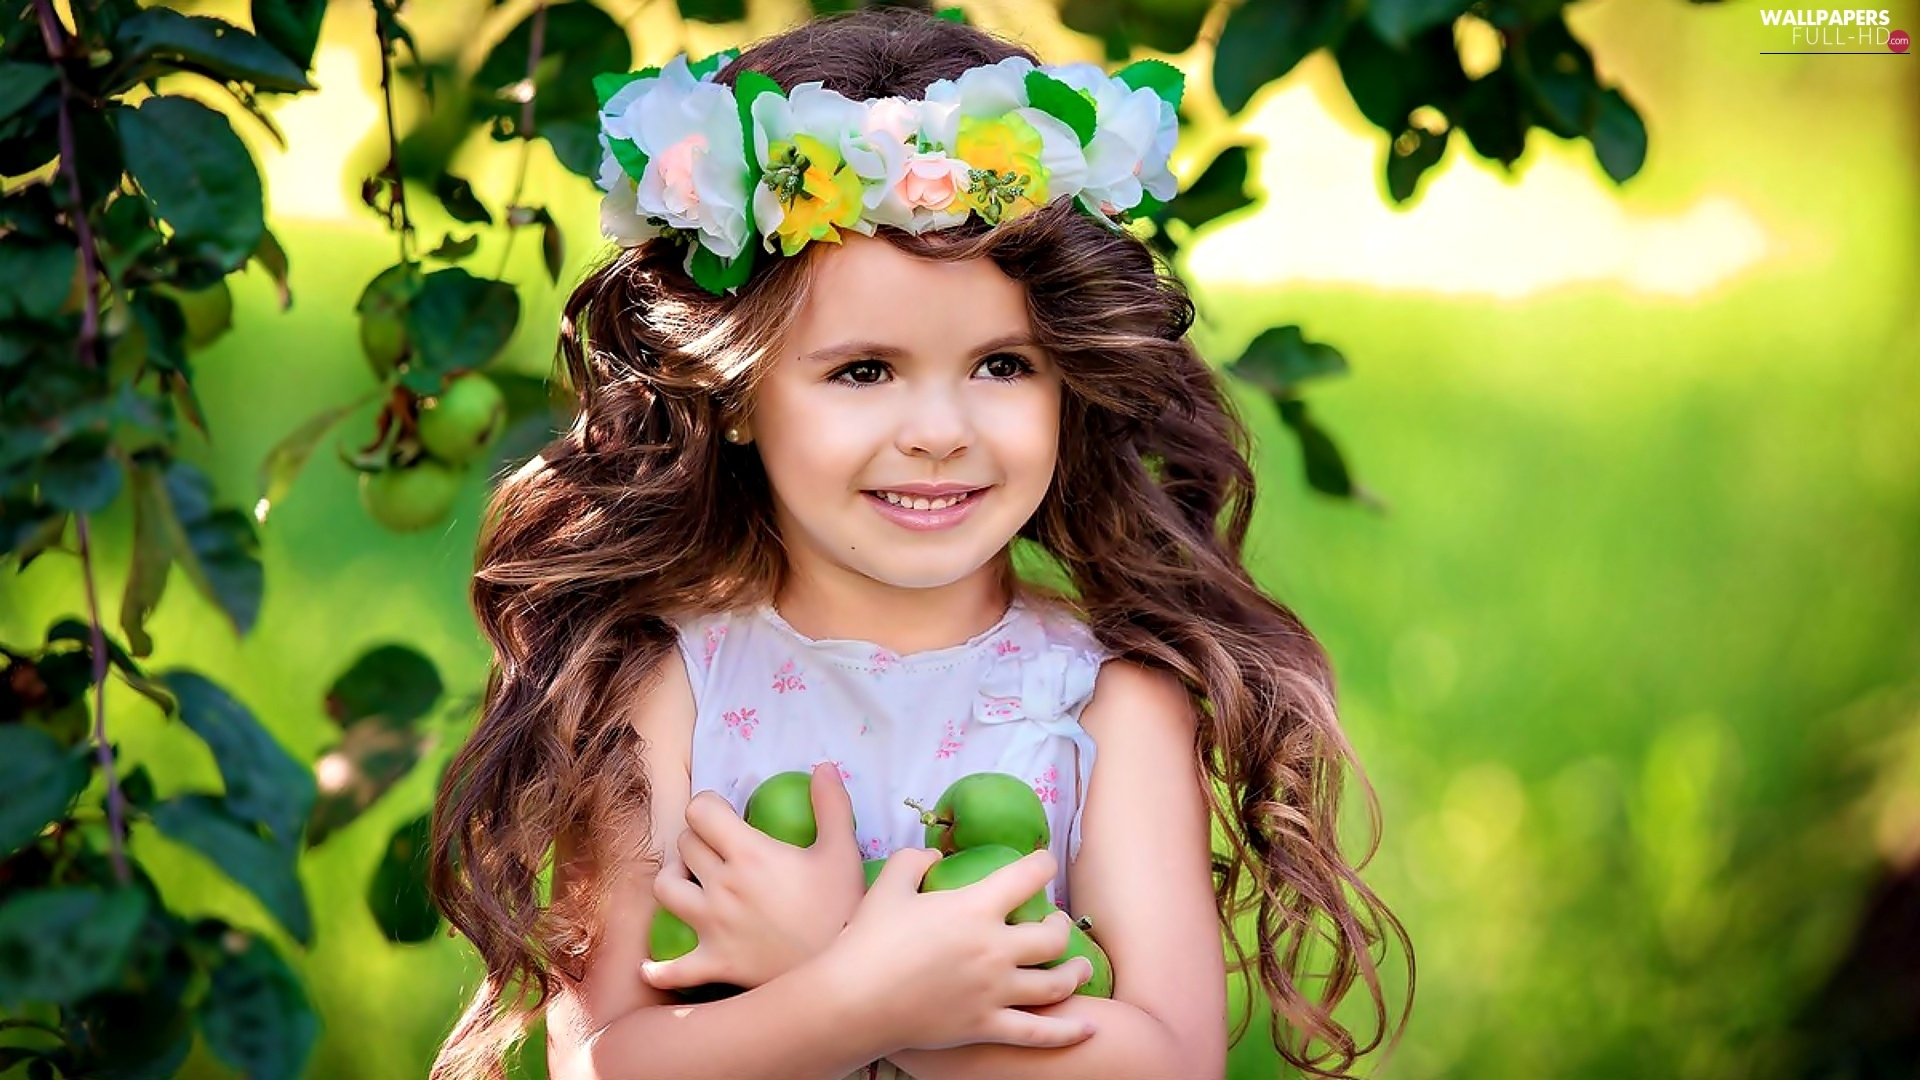 apples, green ones, girl, wreath